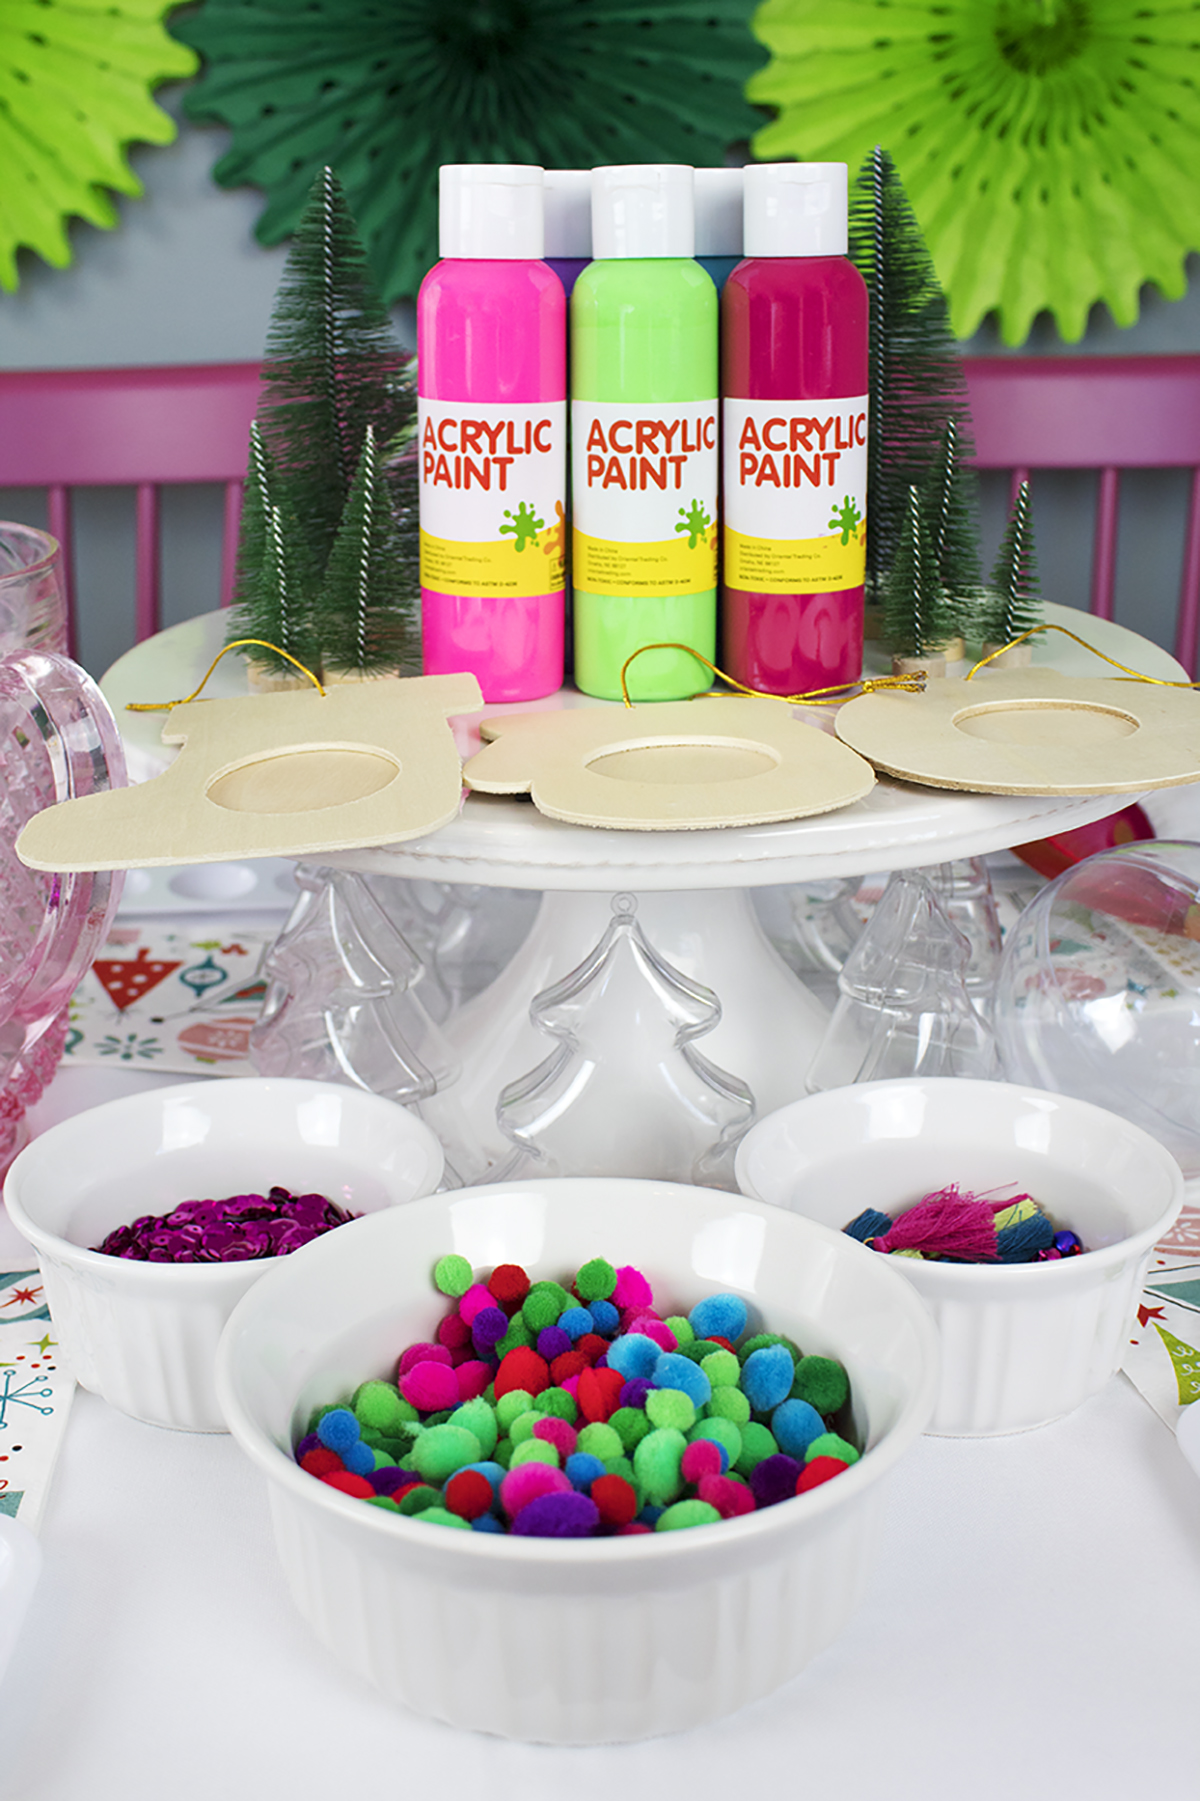 I wanted to whip up a simple party that brings my friends together to do something I personally LOVE- making ornaments! While everyone else is baking cookies, you can find us creating one-of-a-kind baubles for our tree that we can use year after year. Click to see the full party! #christmaspartyideas #christmascrafts #diychristmasornaments #cookieexchangeparty